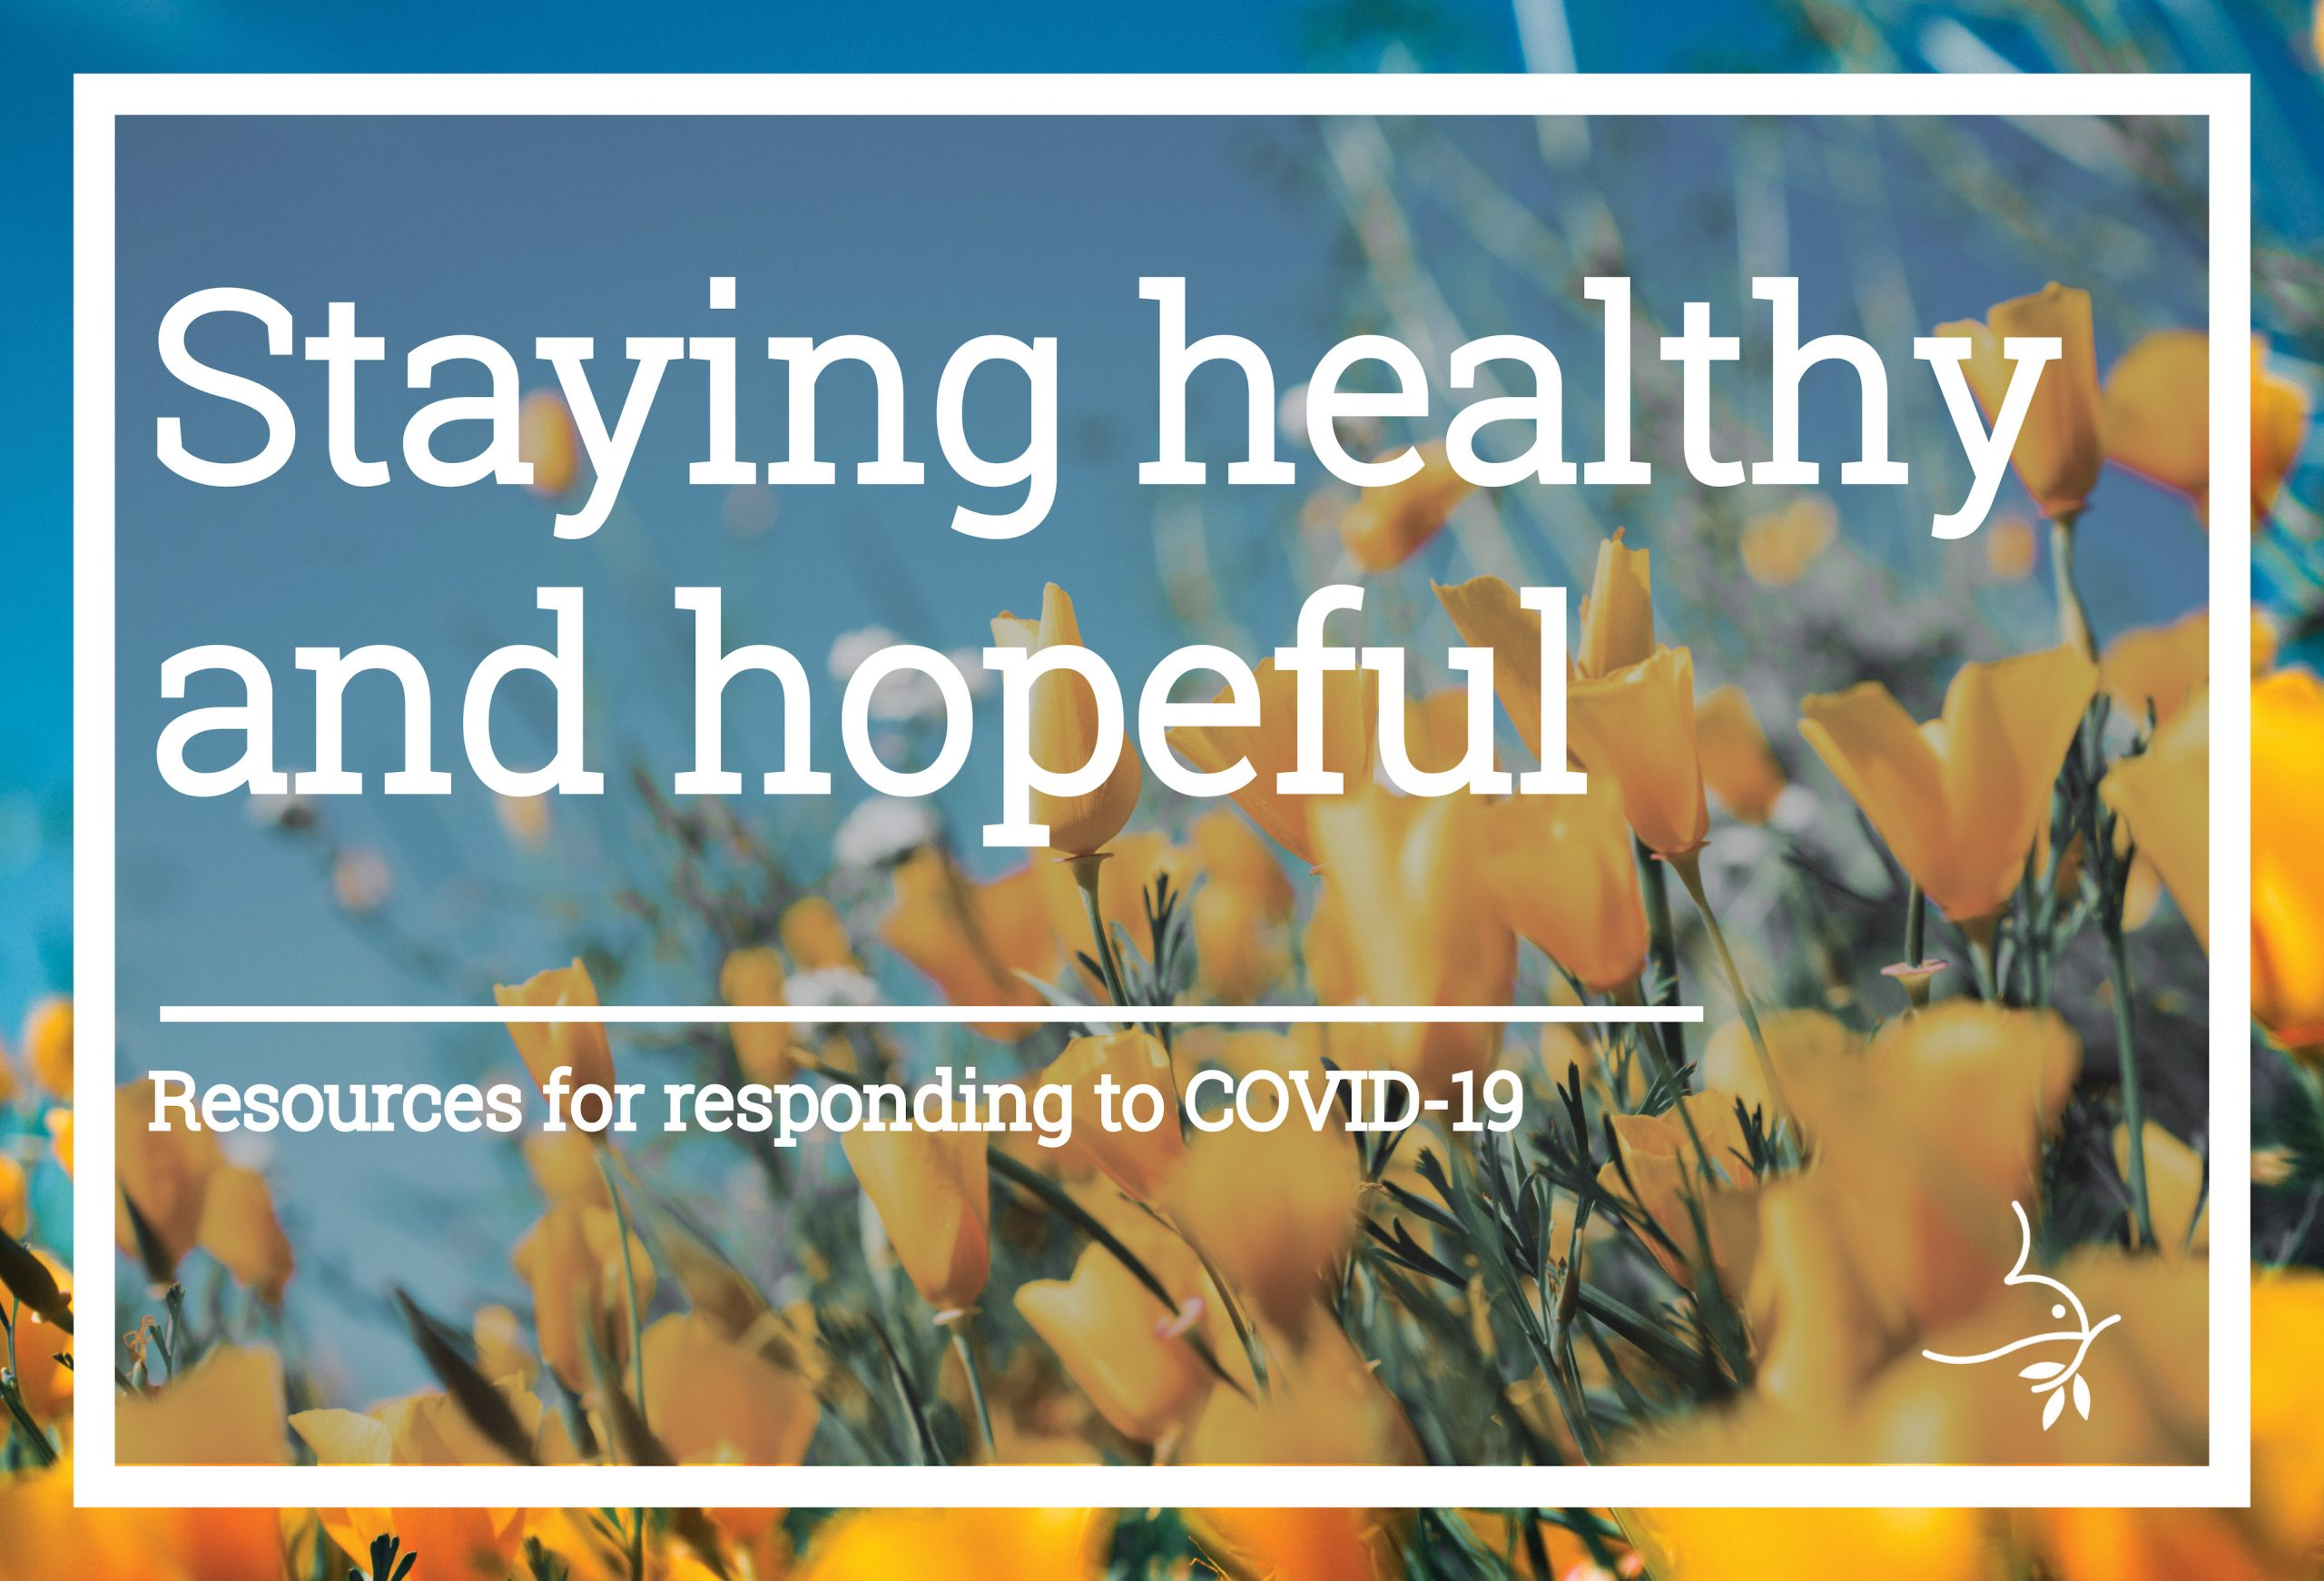 Staying healthy web page